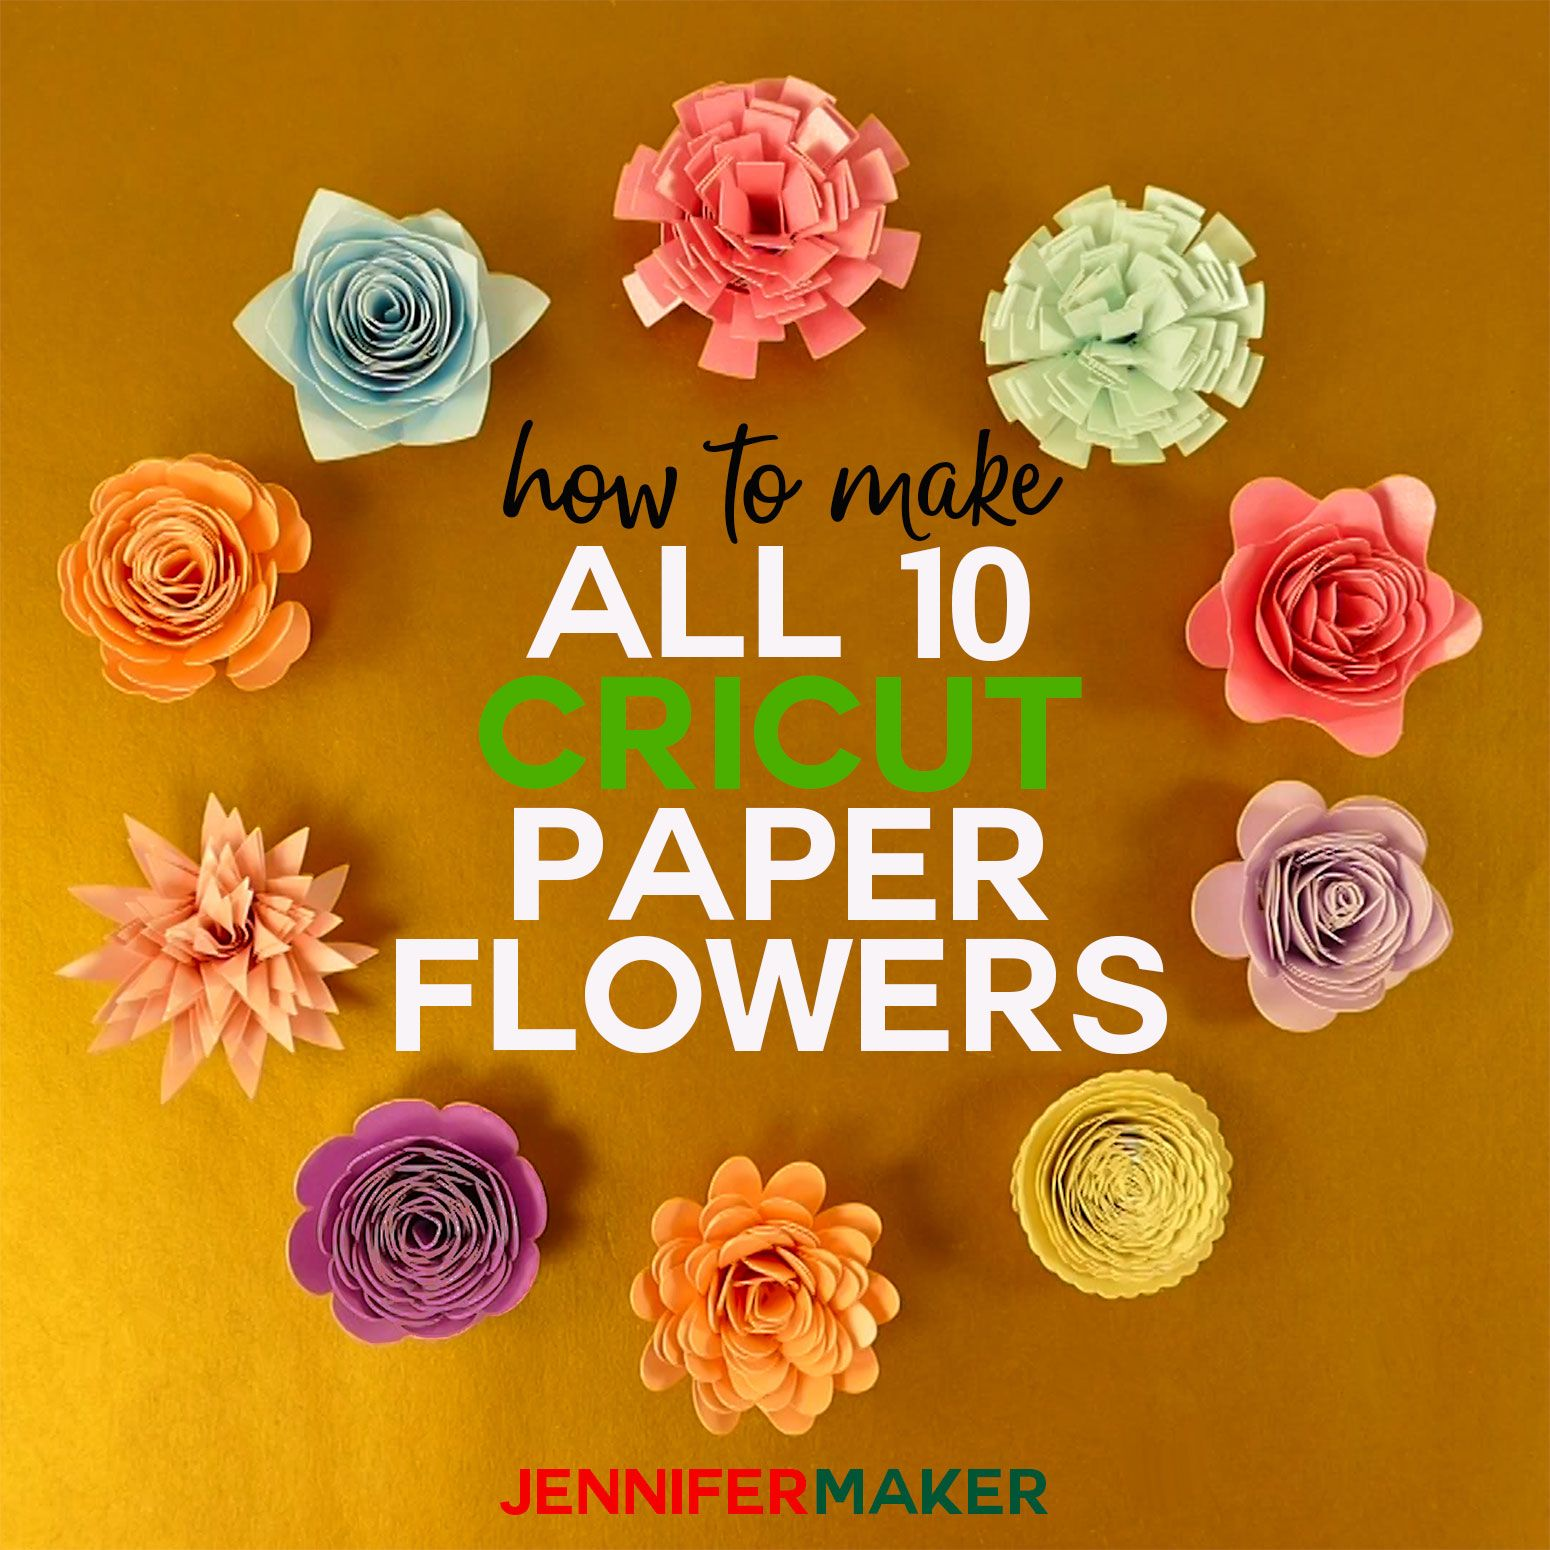 How To Make Cricut Paper Flowers All 10 Paper Flowers Diy